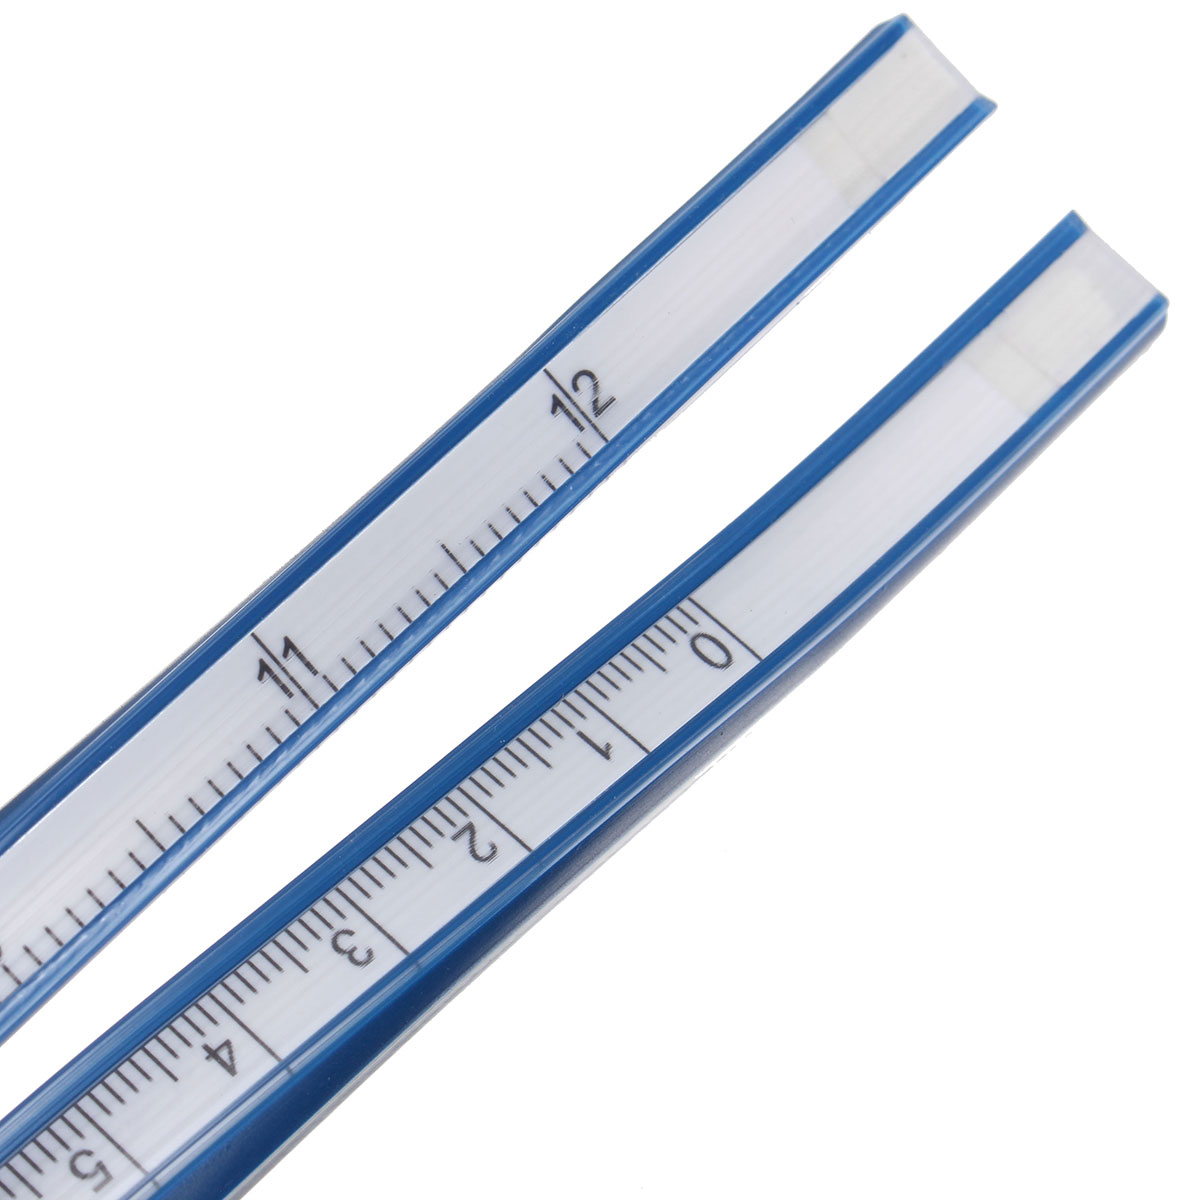 30cm Flexible Plastic Ruler Measuring Gauge Ruler Technical Curve